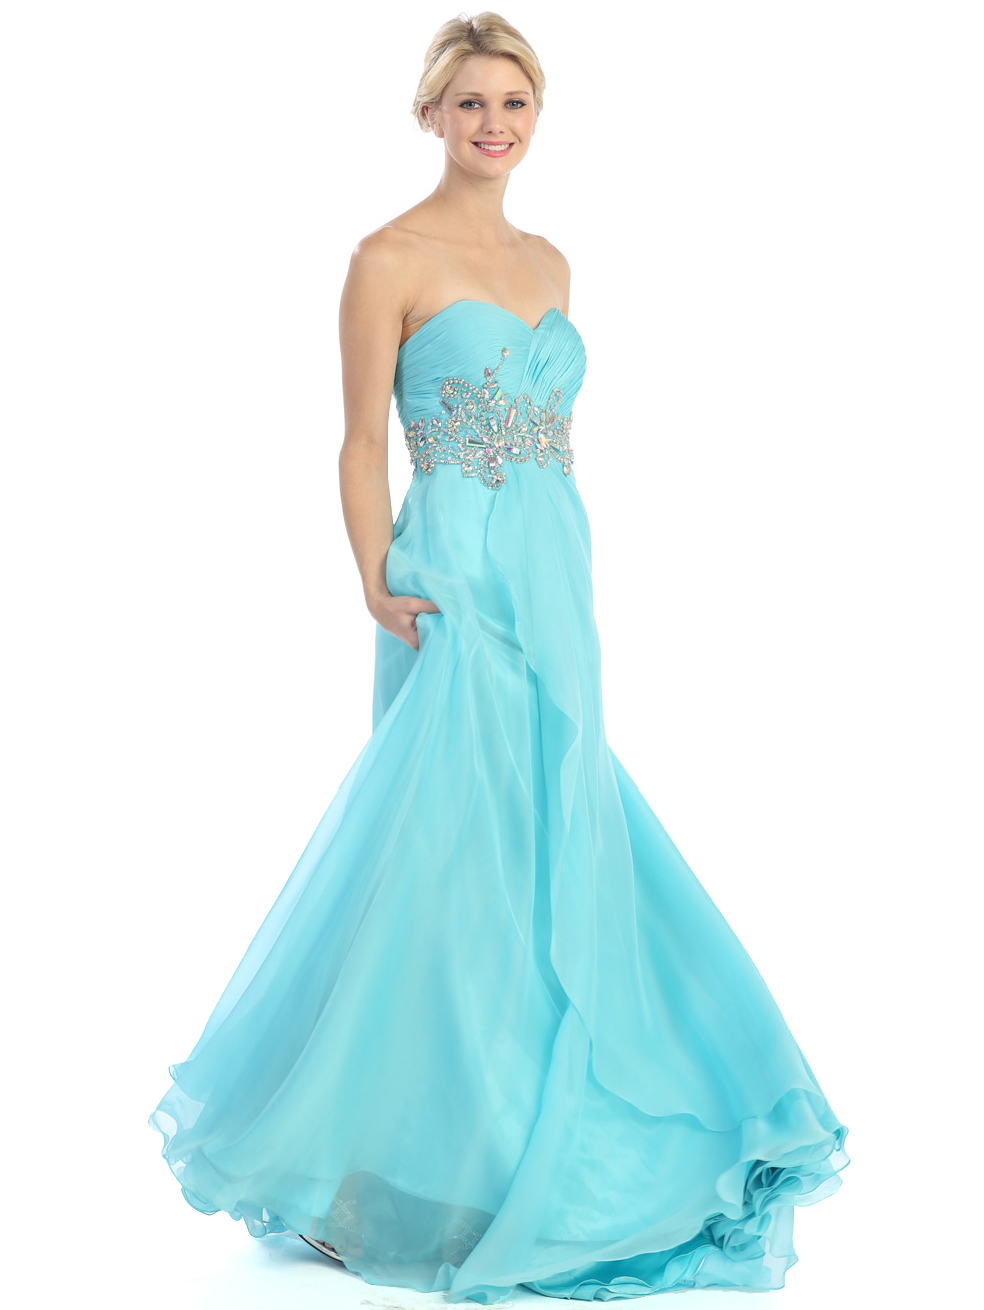 Strapless Pleated and Jeweled Prom Dress | Sung Boutique L.A.